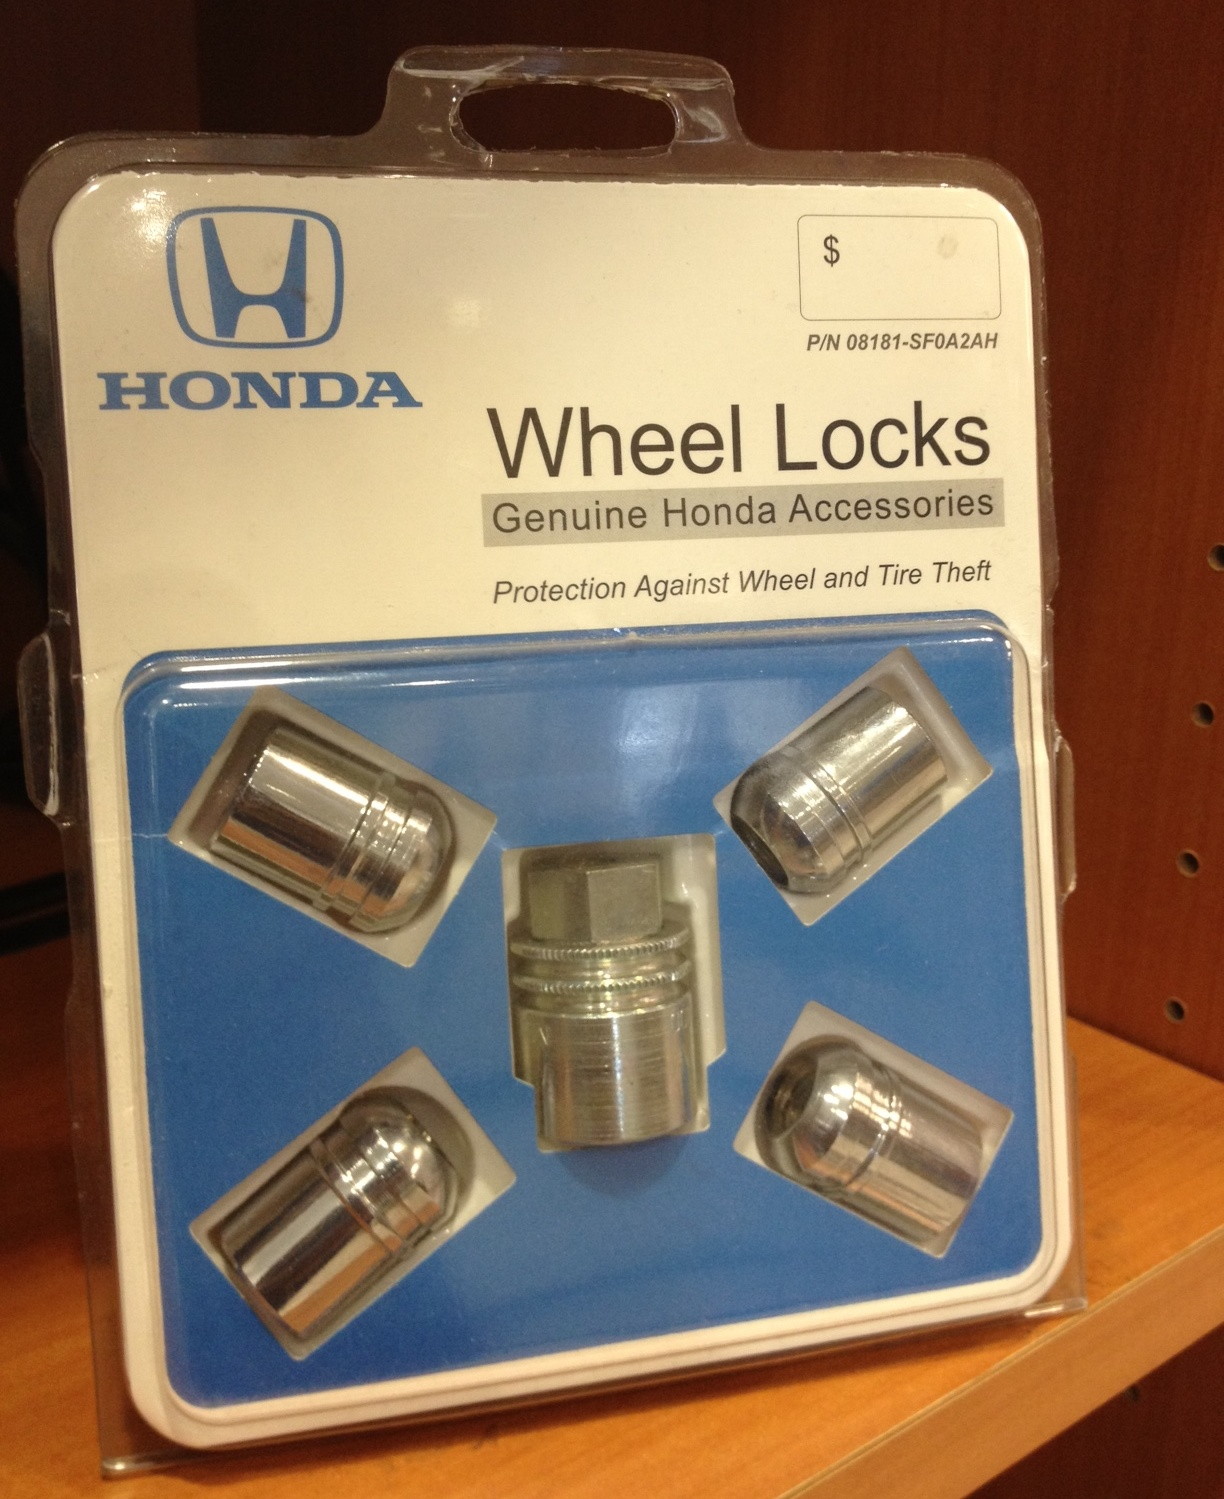 Hondafinancialservices Online Payment >> Honda-Wheel-Locks-Austin-TX - Howdy Honda Blog